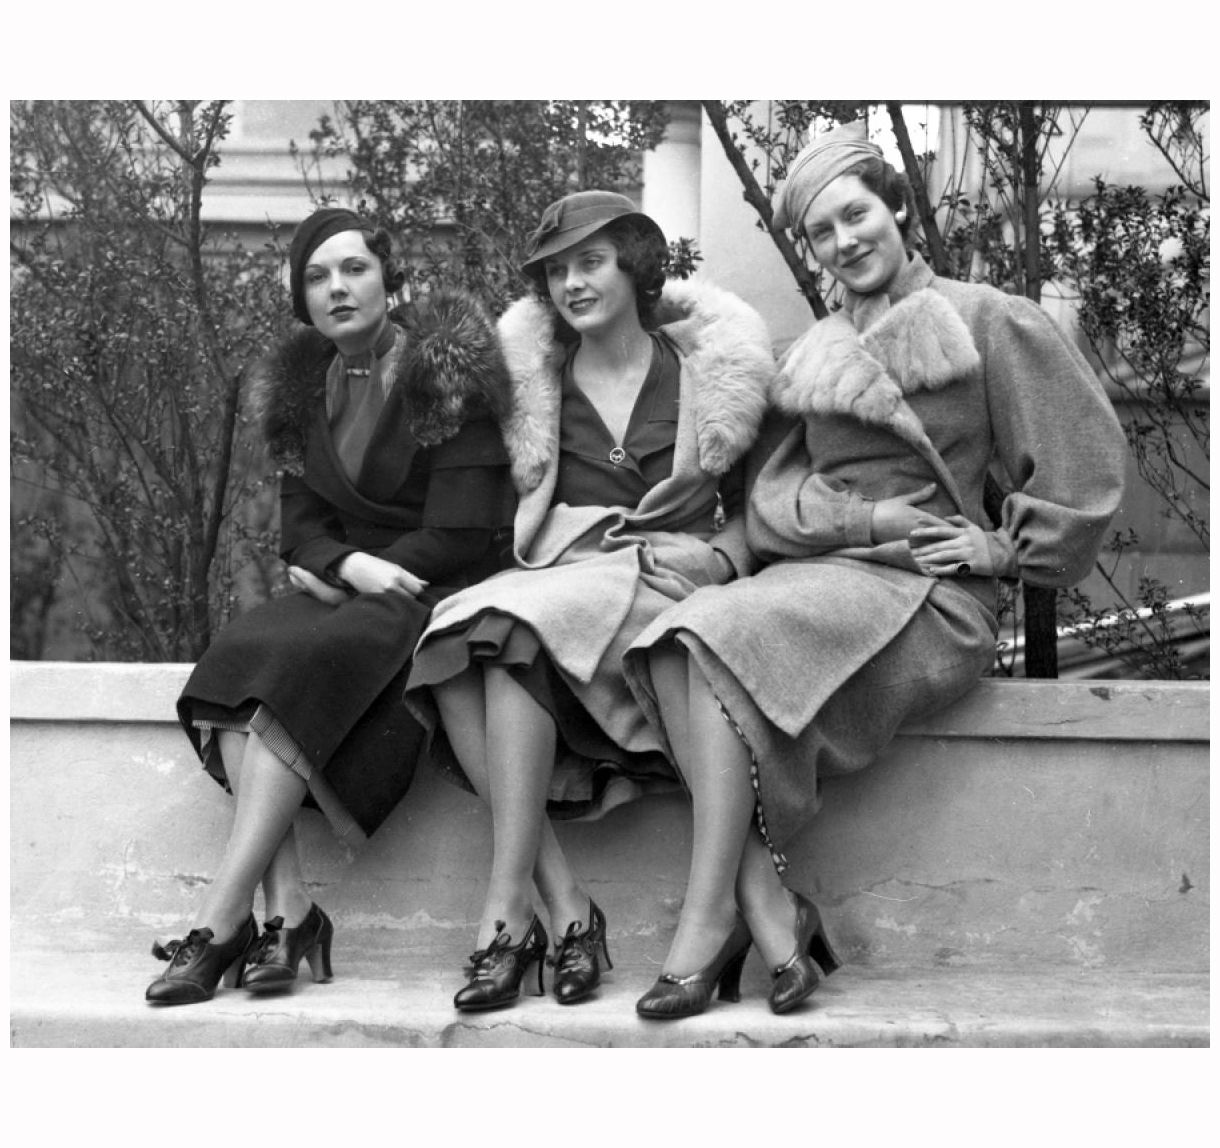 Pin by 1930s/1940s Womens Fashion on 1930s Suits in 2020